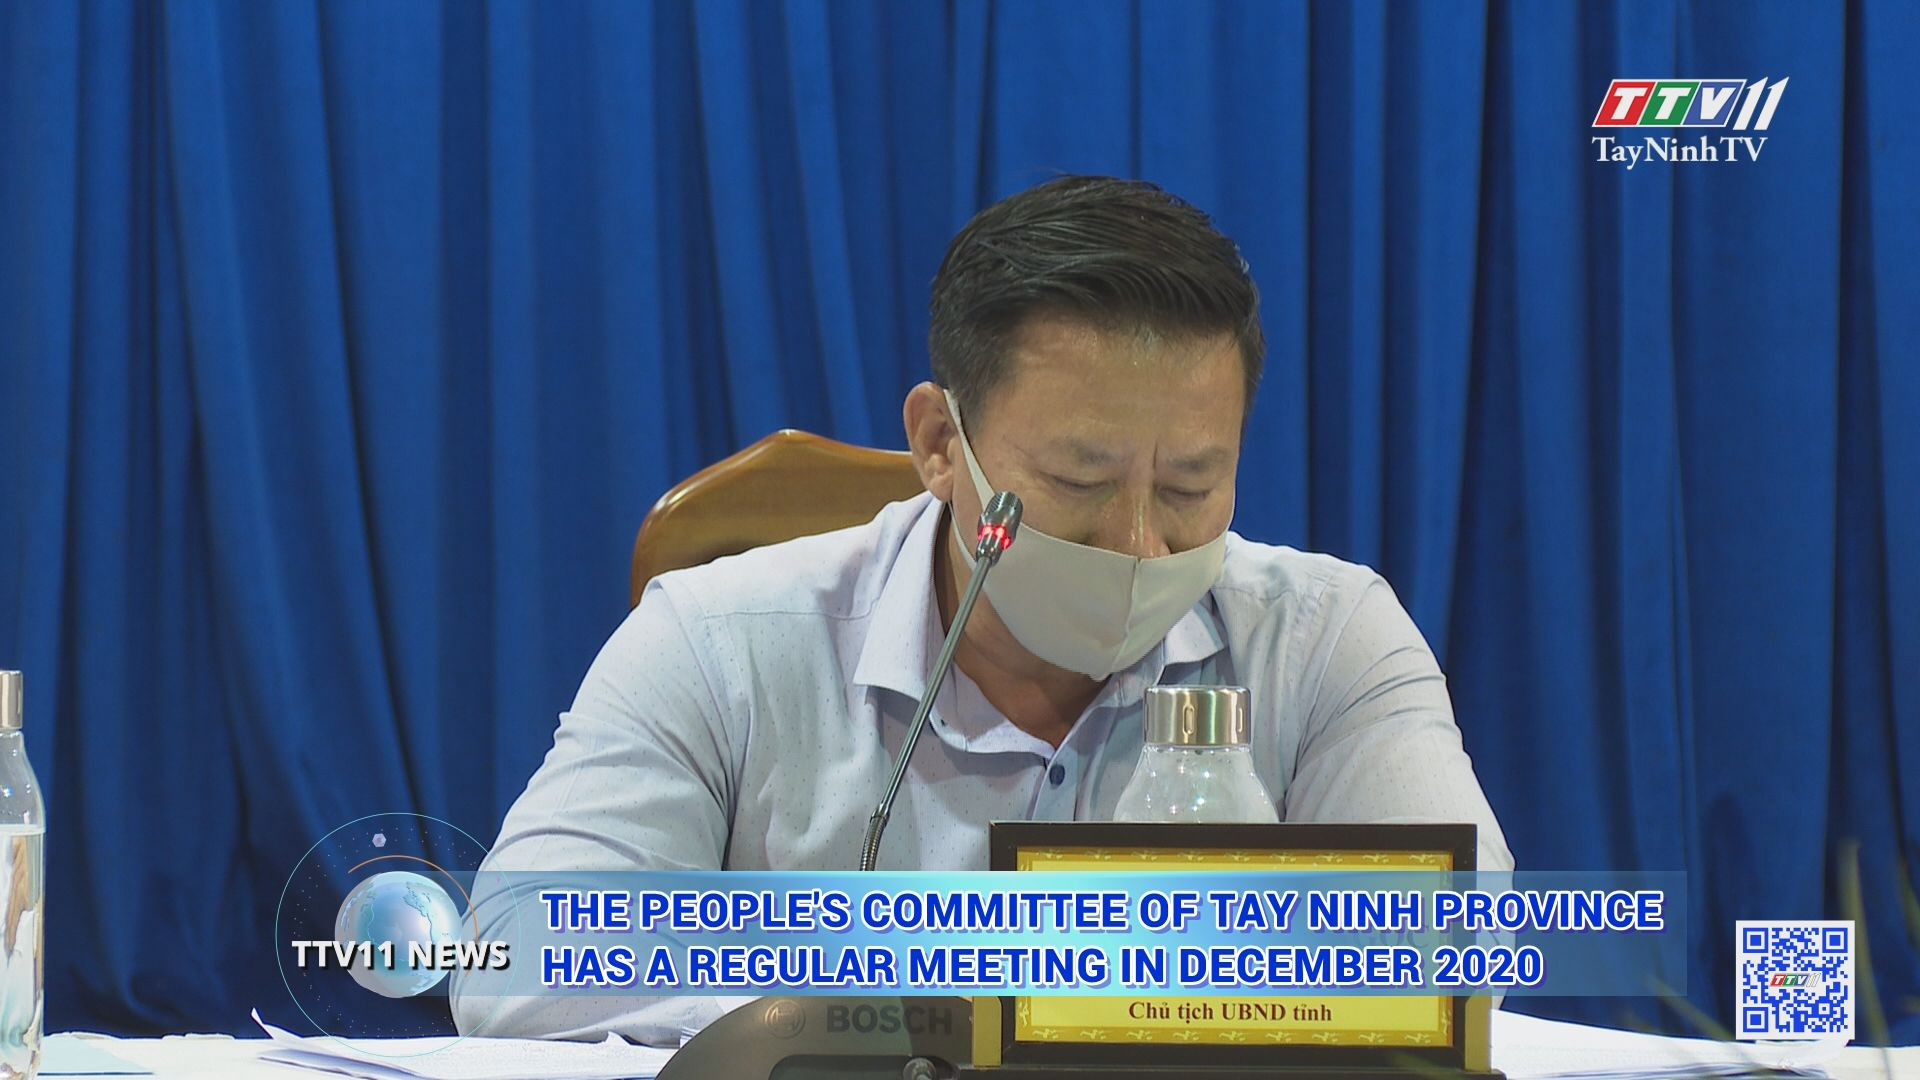 The people's committee of tay ninh province has a regular meeting in december 2020 | TTVNEWS | TayNinhTV Today